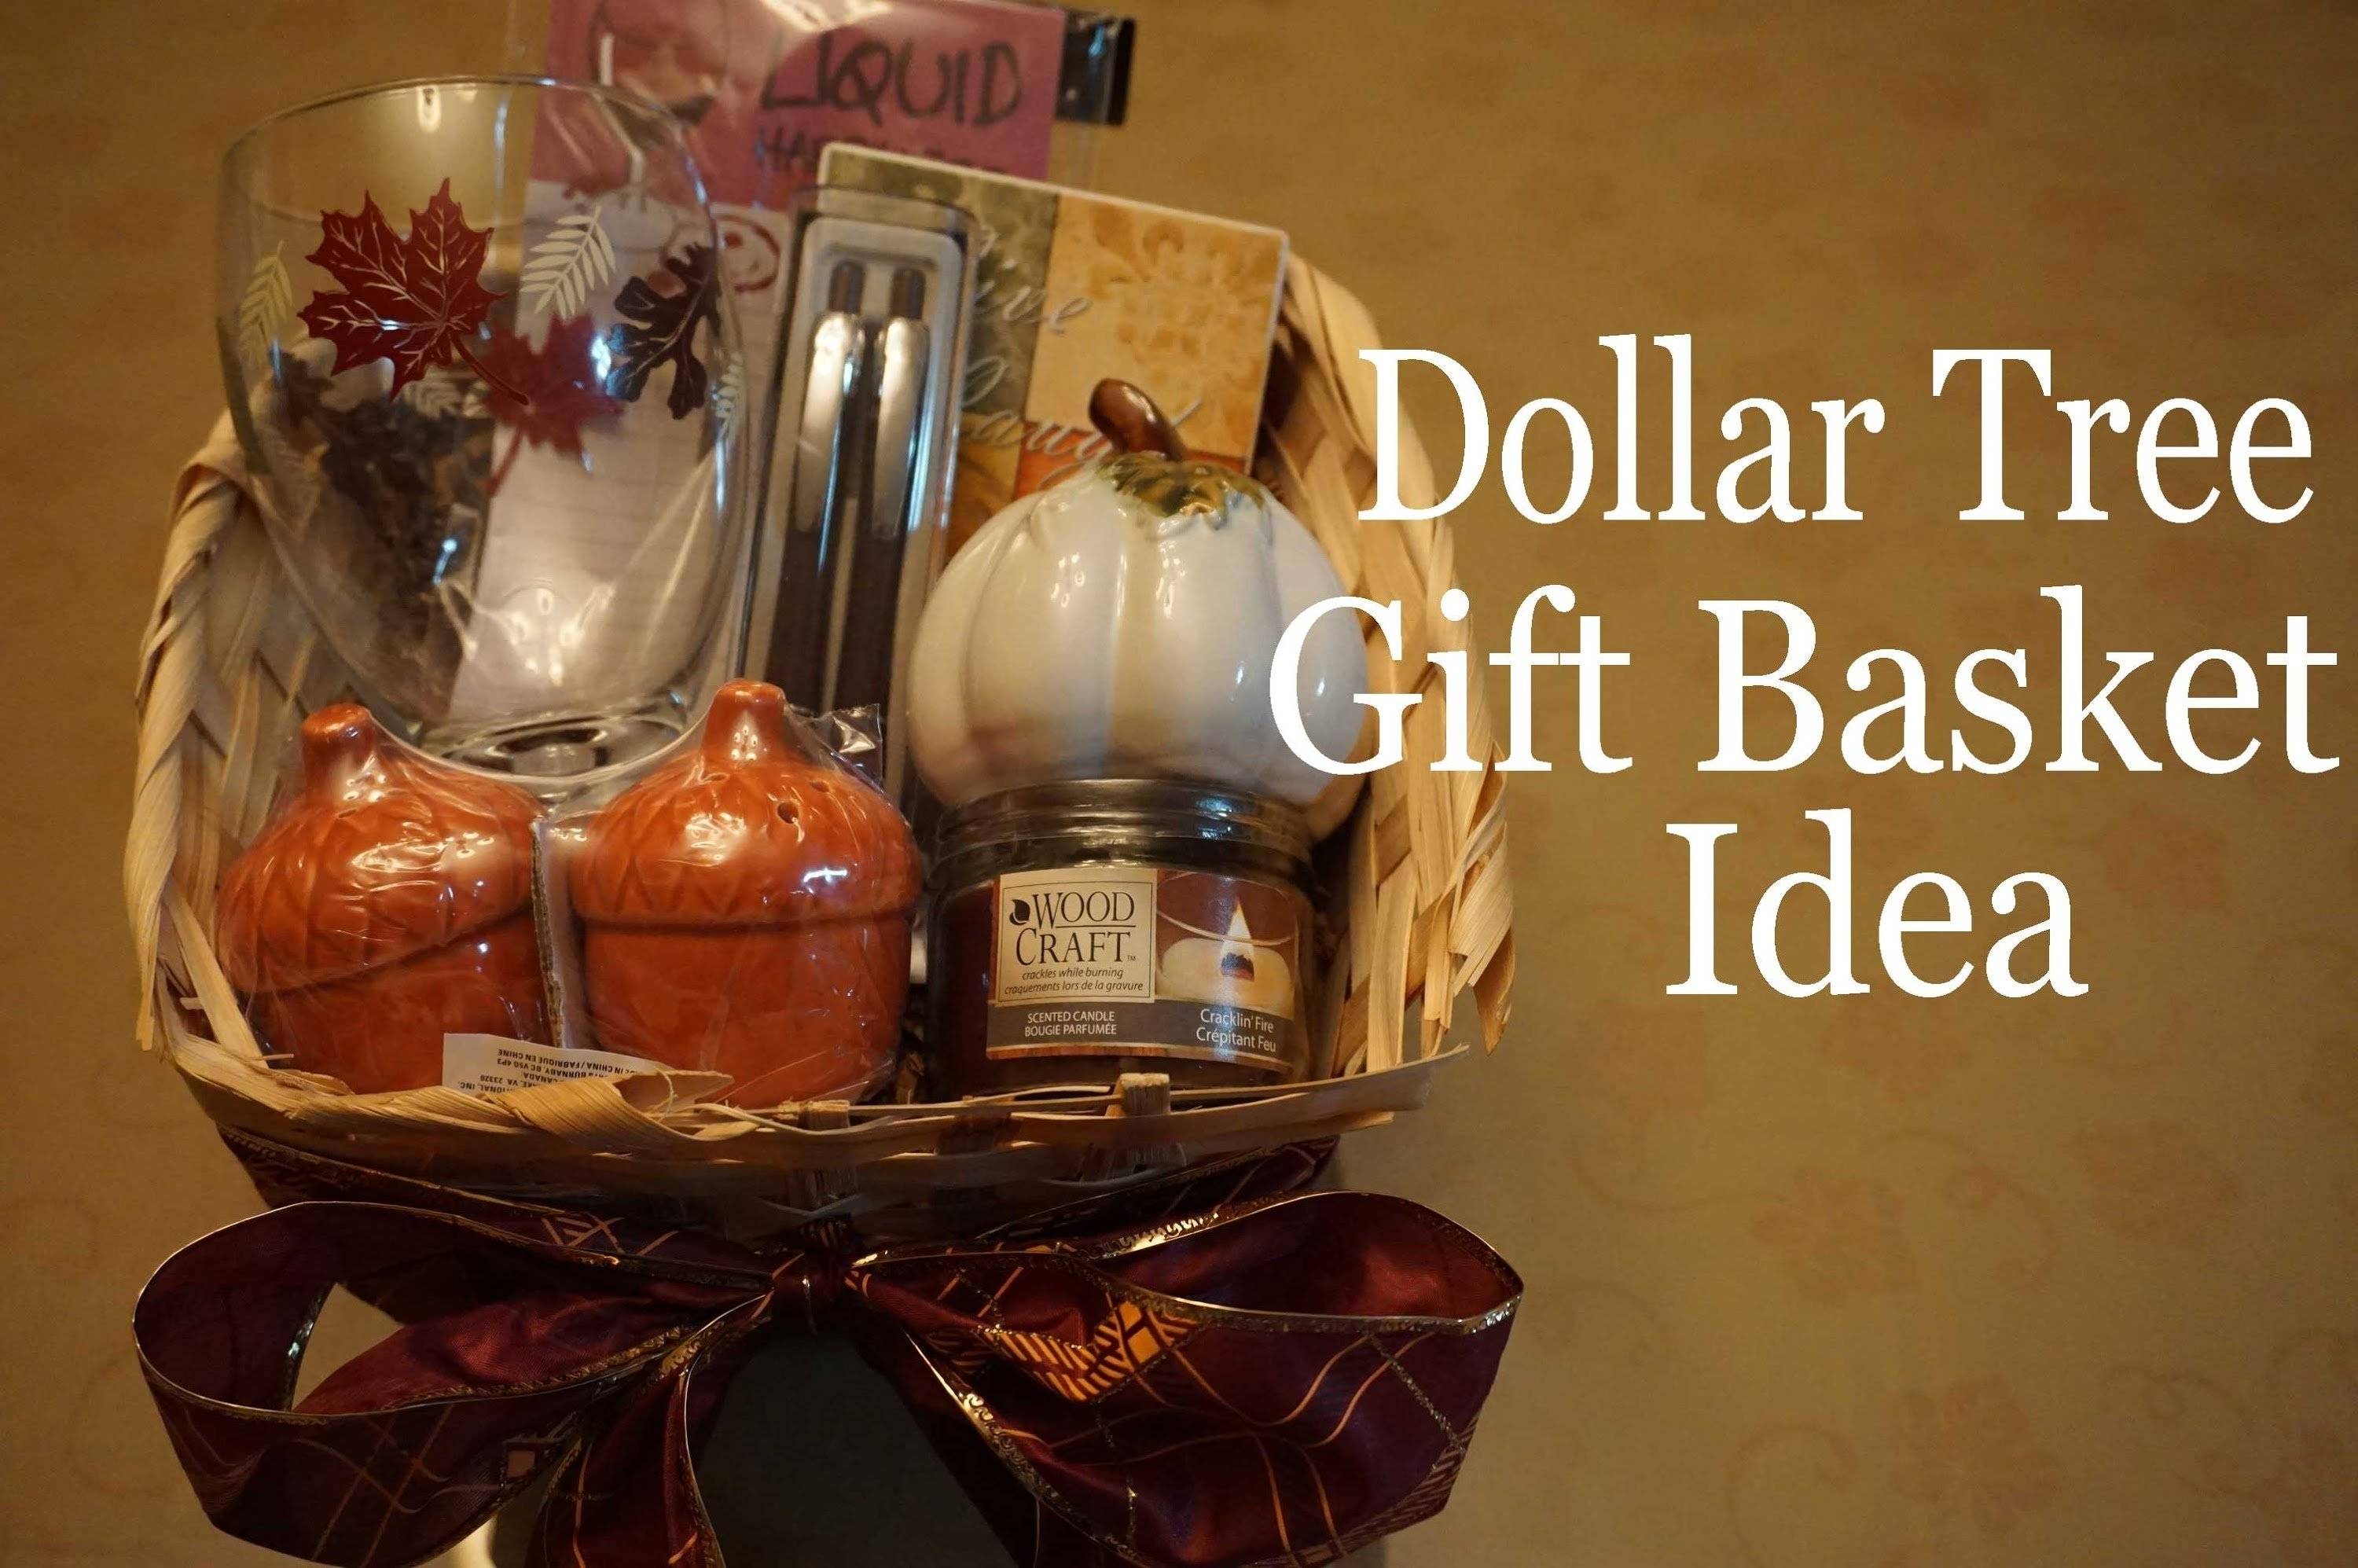 10 Fashionable Ideas For A Gift Basket dollartree gift basket idea f09f8d82fall autumn 2015 divadollflawless 2020